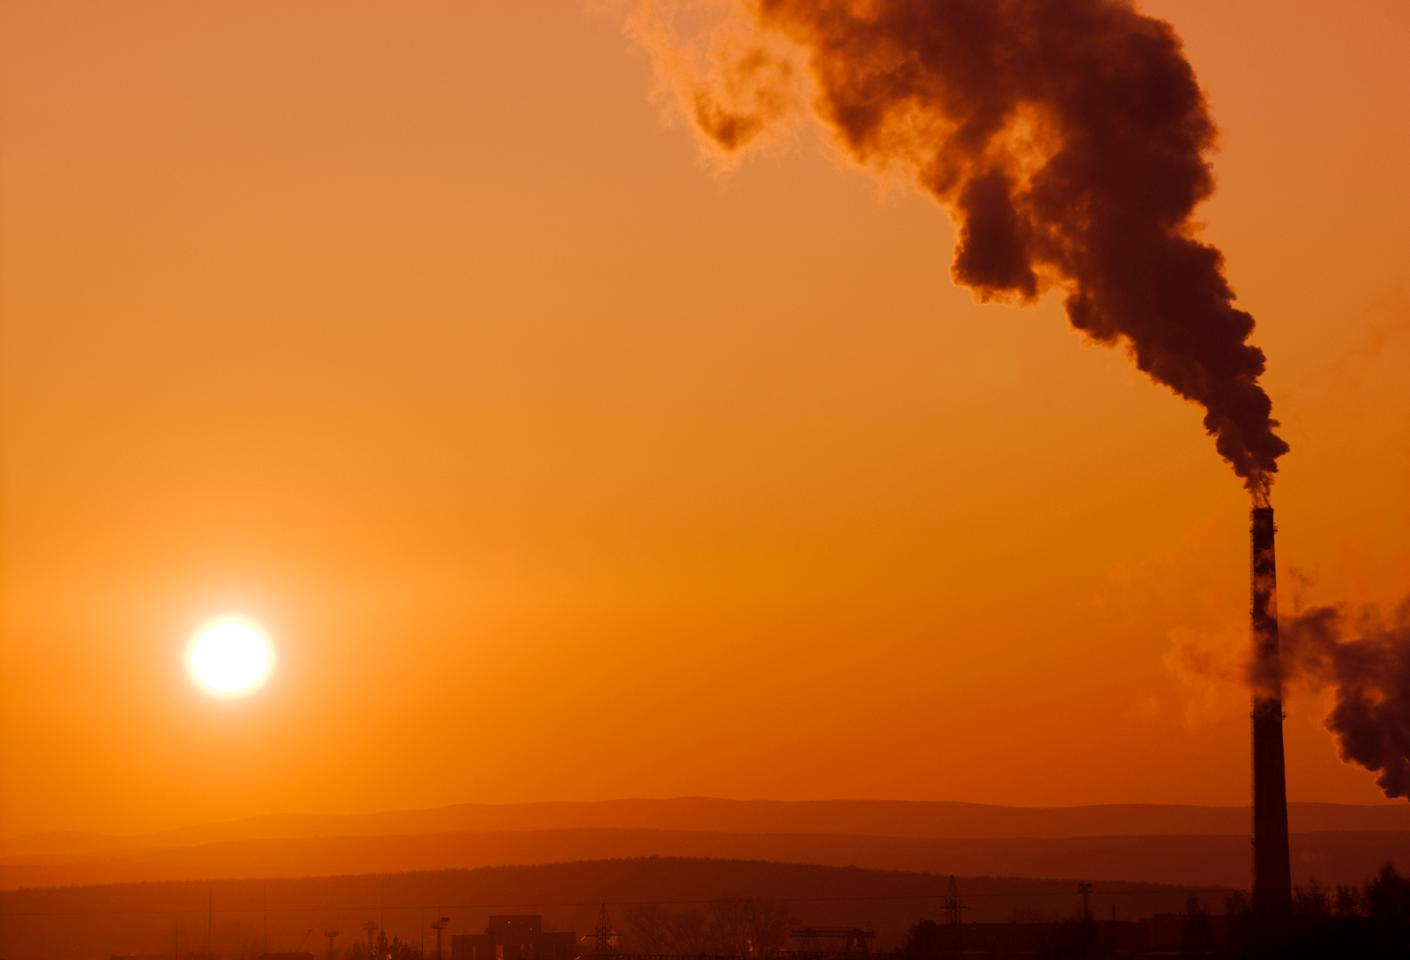 Carbon dioxide levels in the atmosphere have hit record highs, scientists are reporting